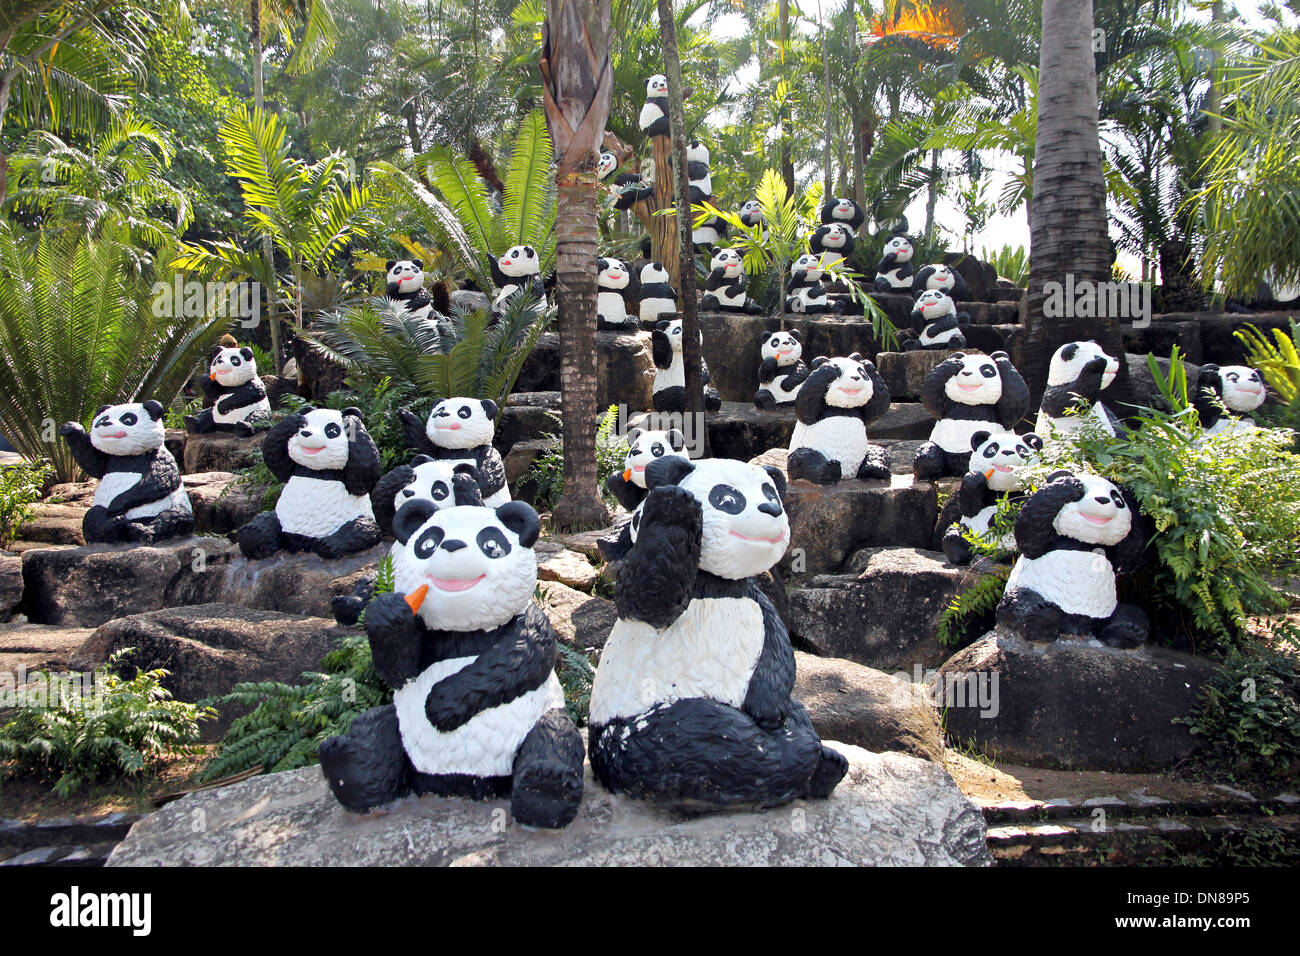 Many Of The Panda Statue In Park.   Stock Image